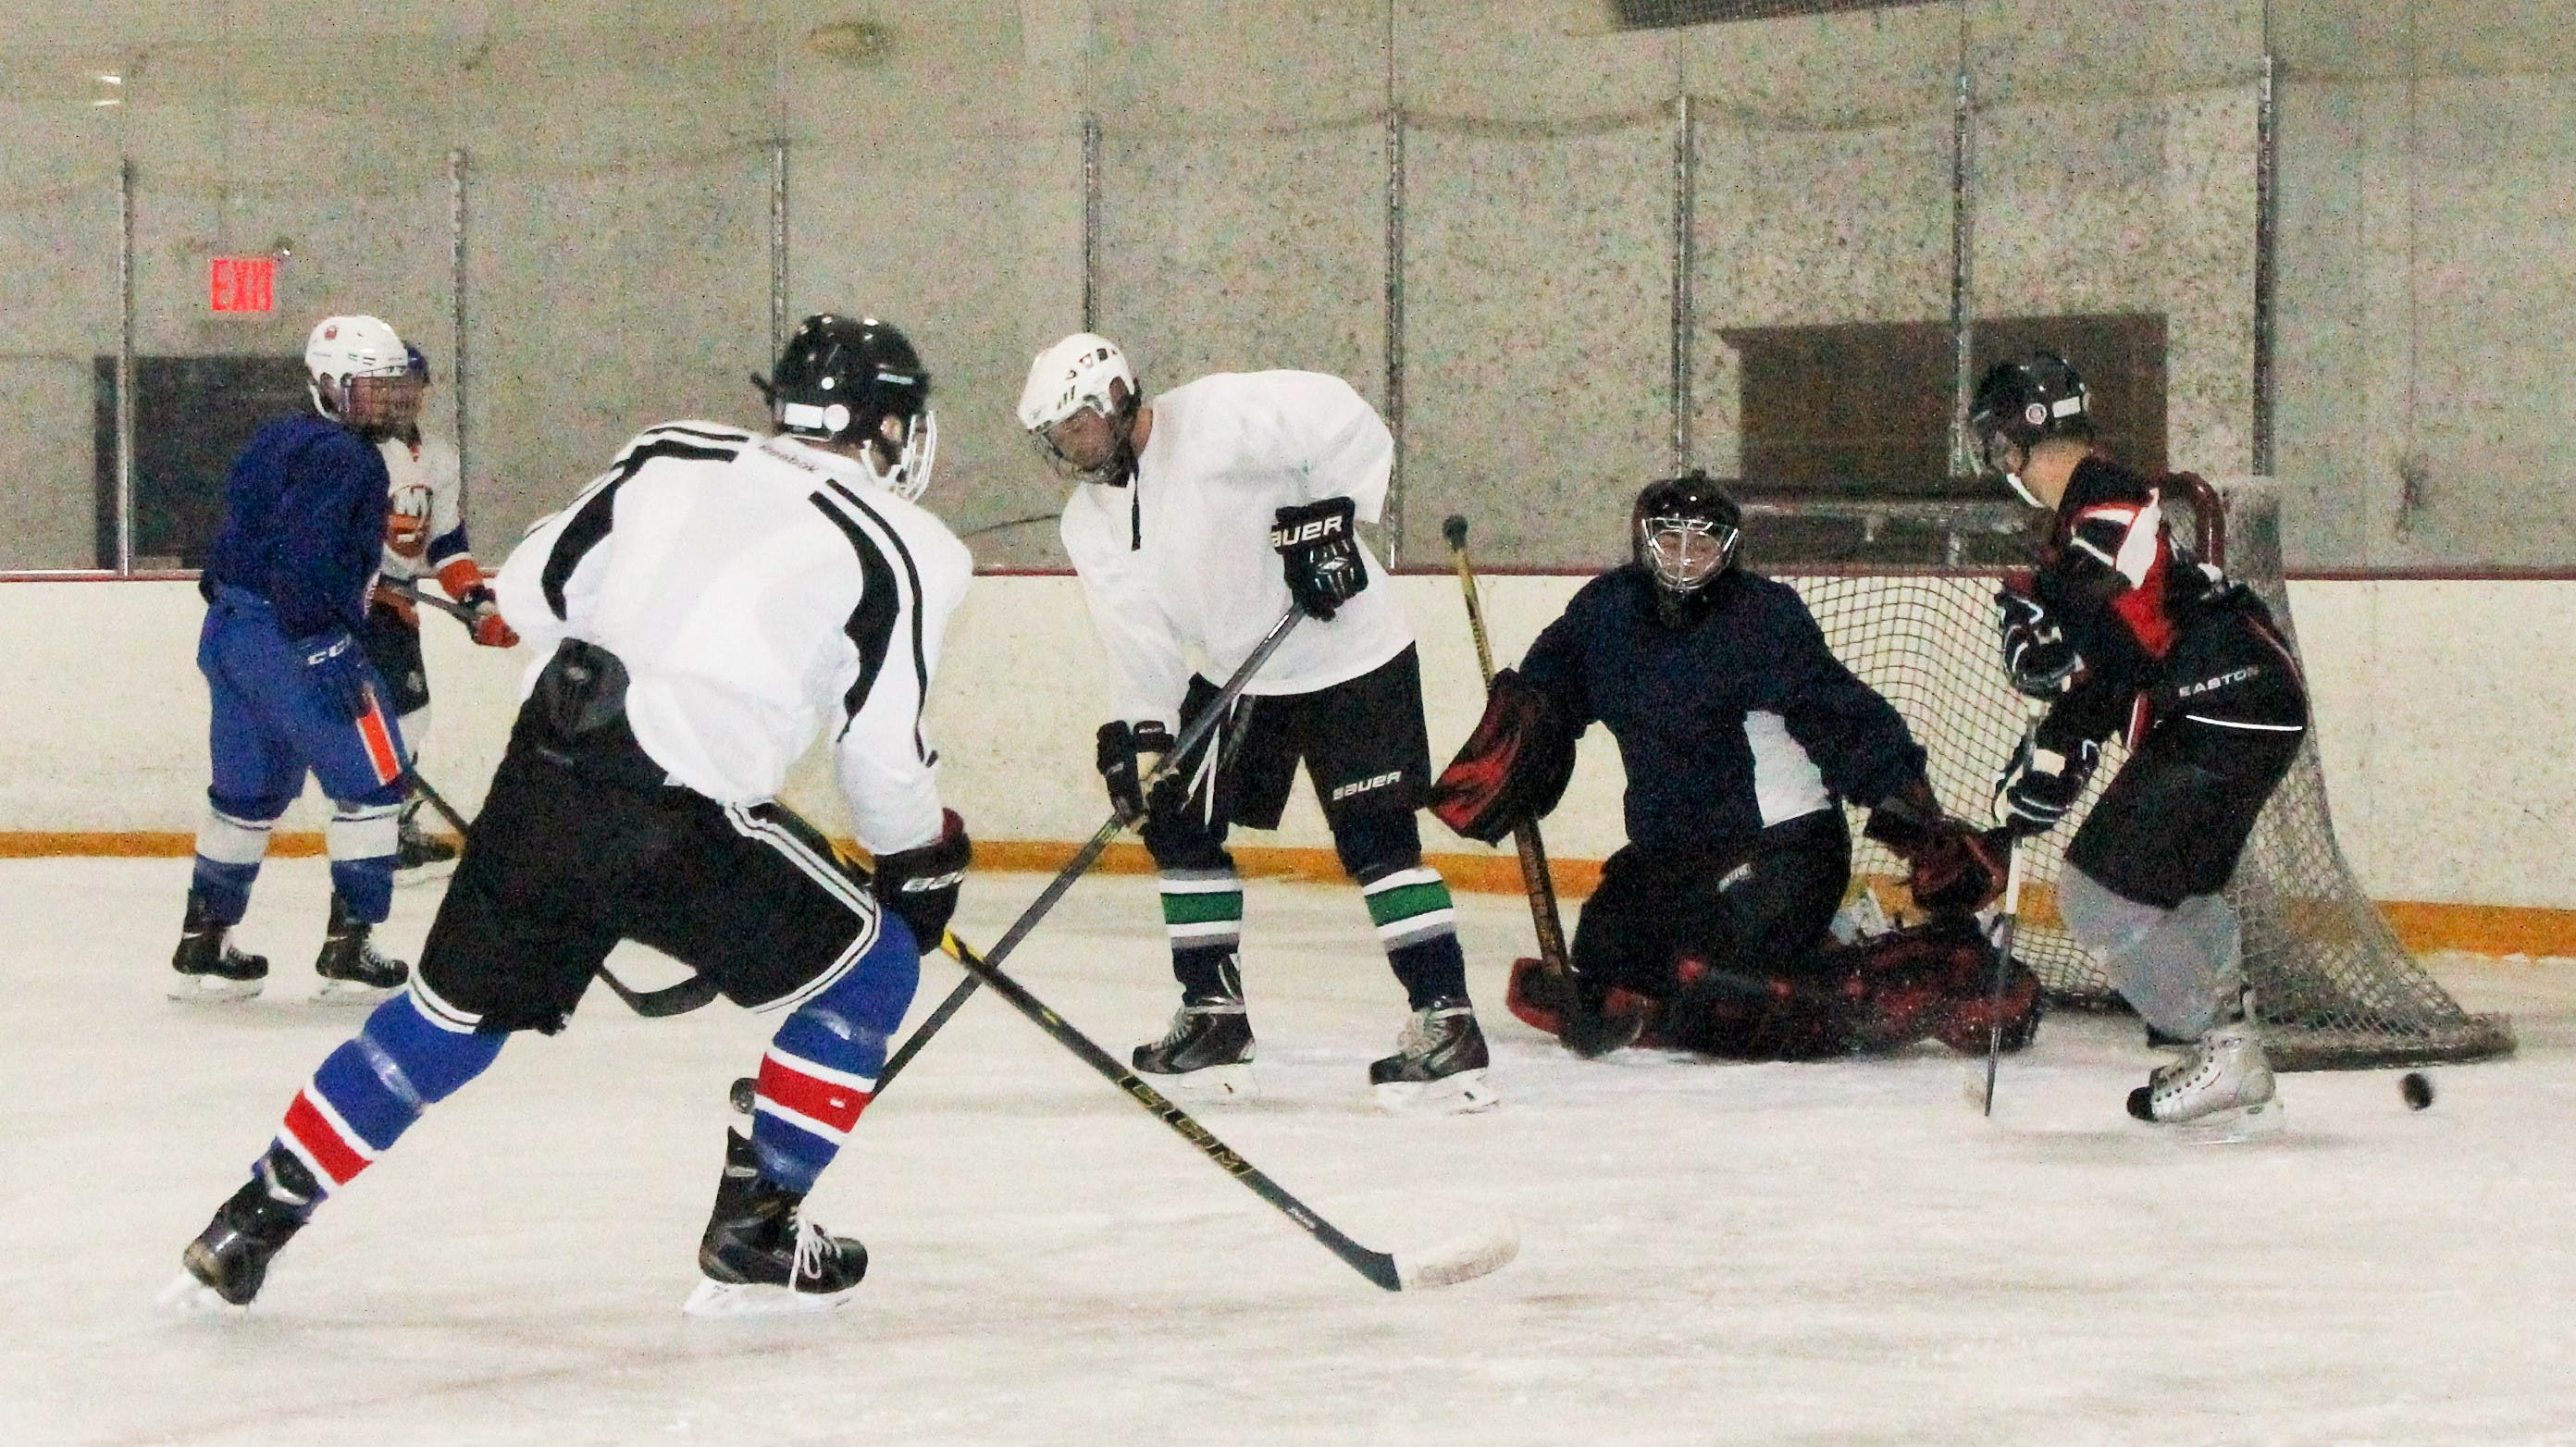 Long Island Open Hockey Pick Up Games Tonight Deer Park Ny Patch